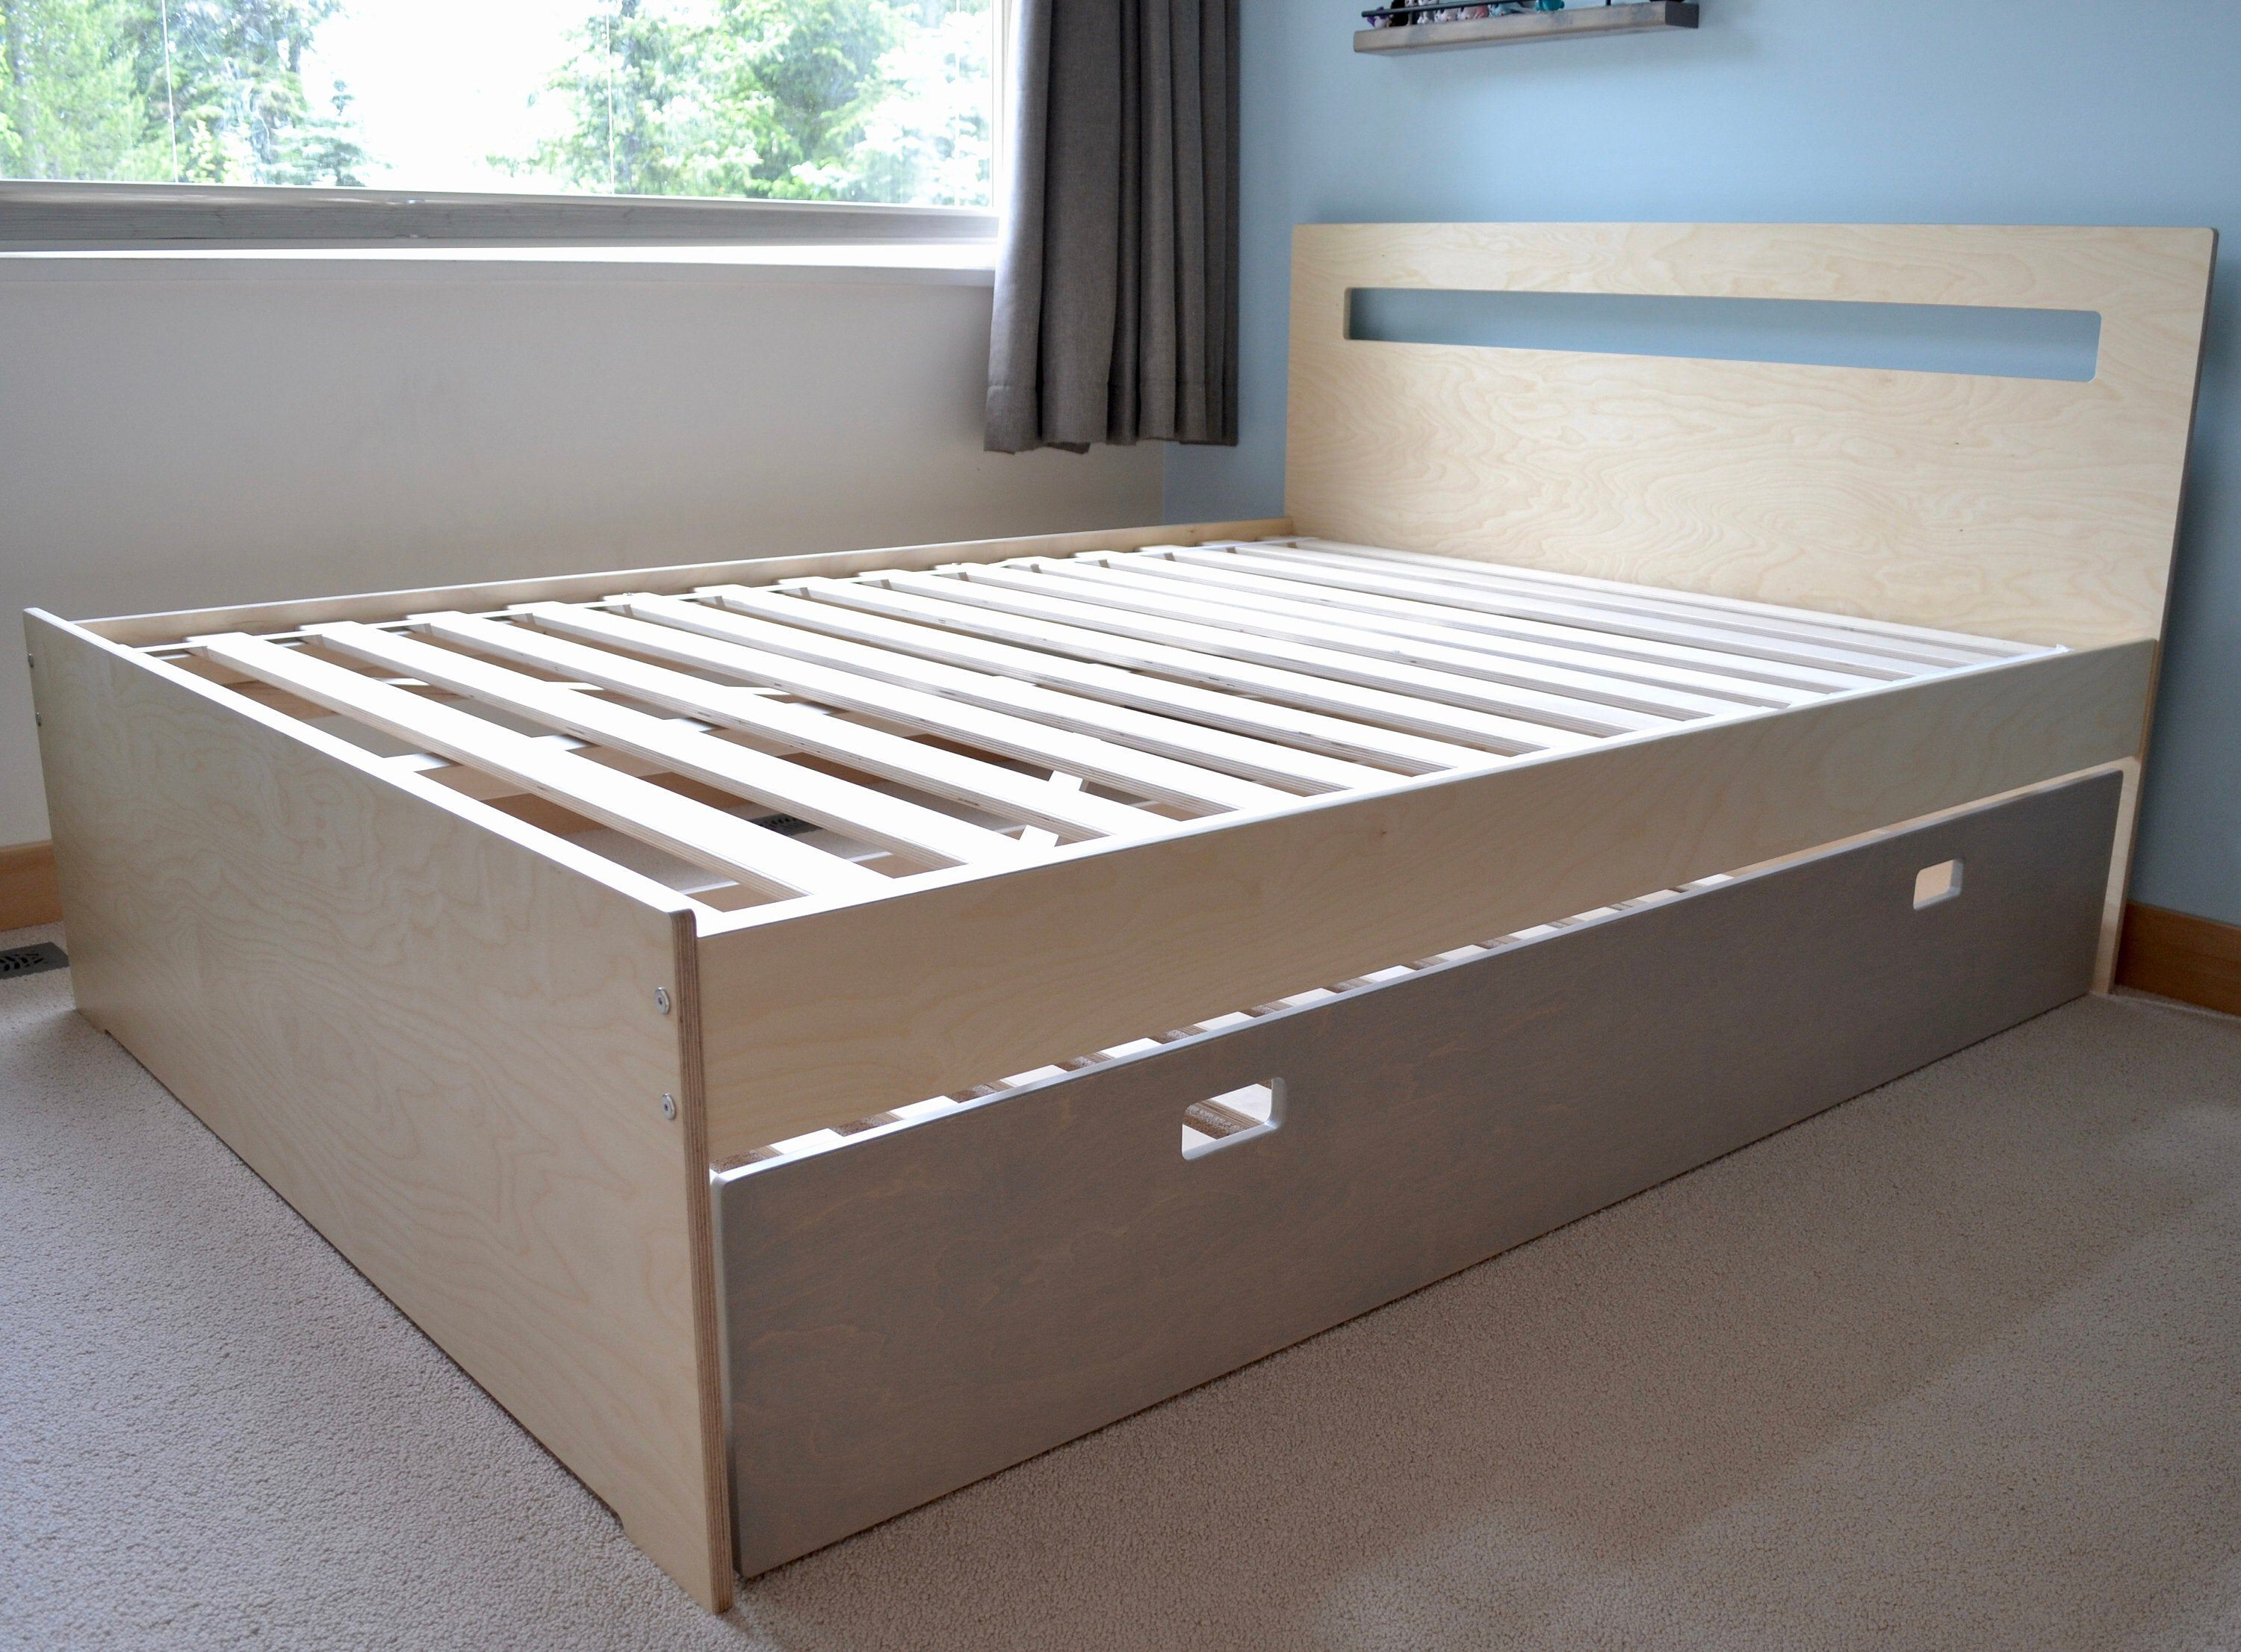 Queen Bed With Twin Trundle Etsy Twin Trundle Modern Queen Bed Queen Trundle Bed